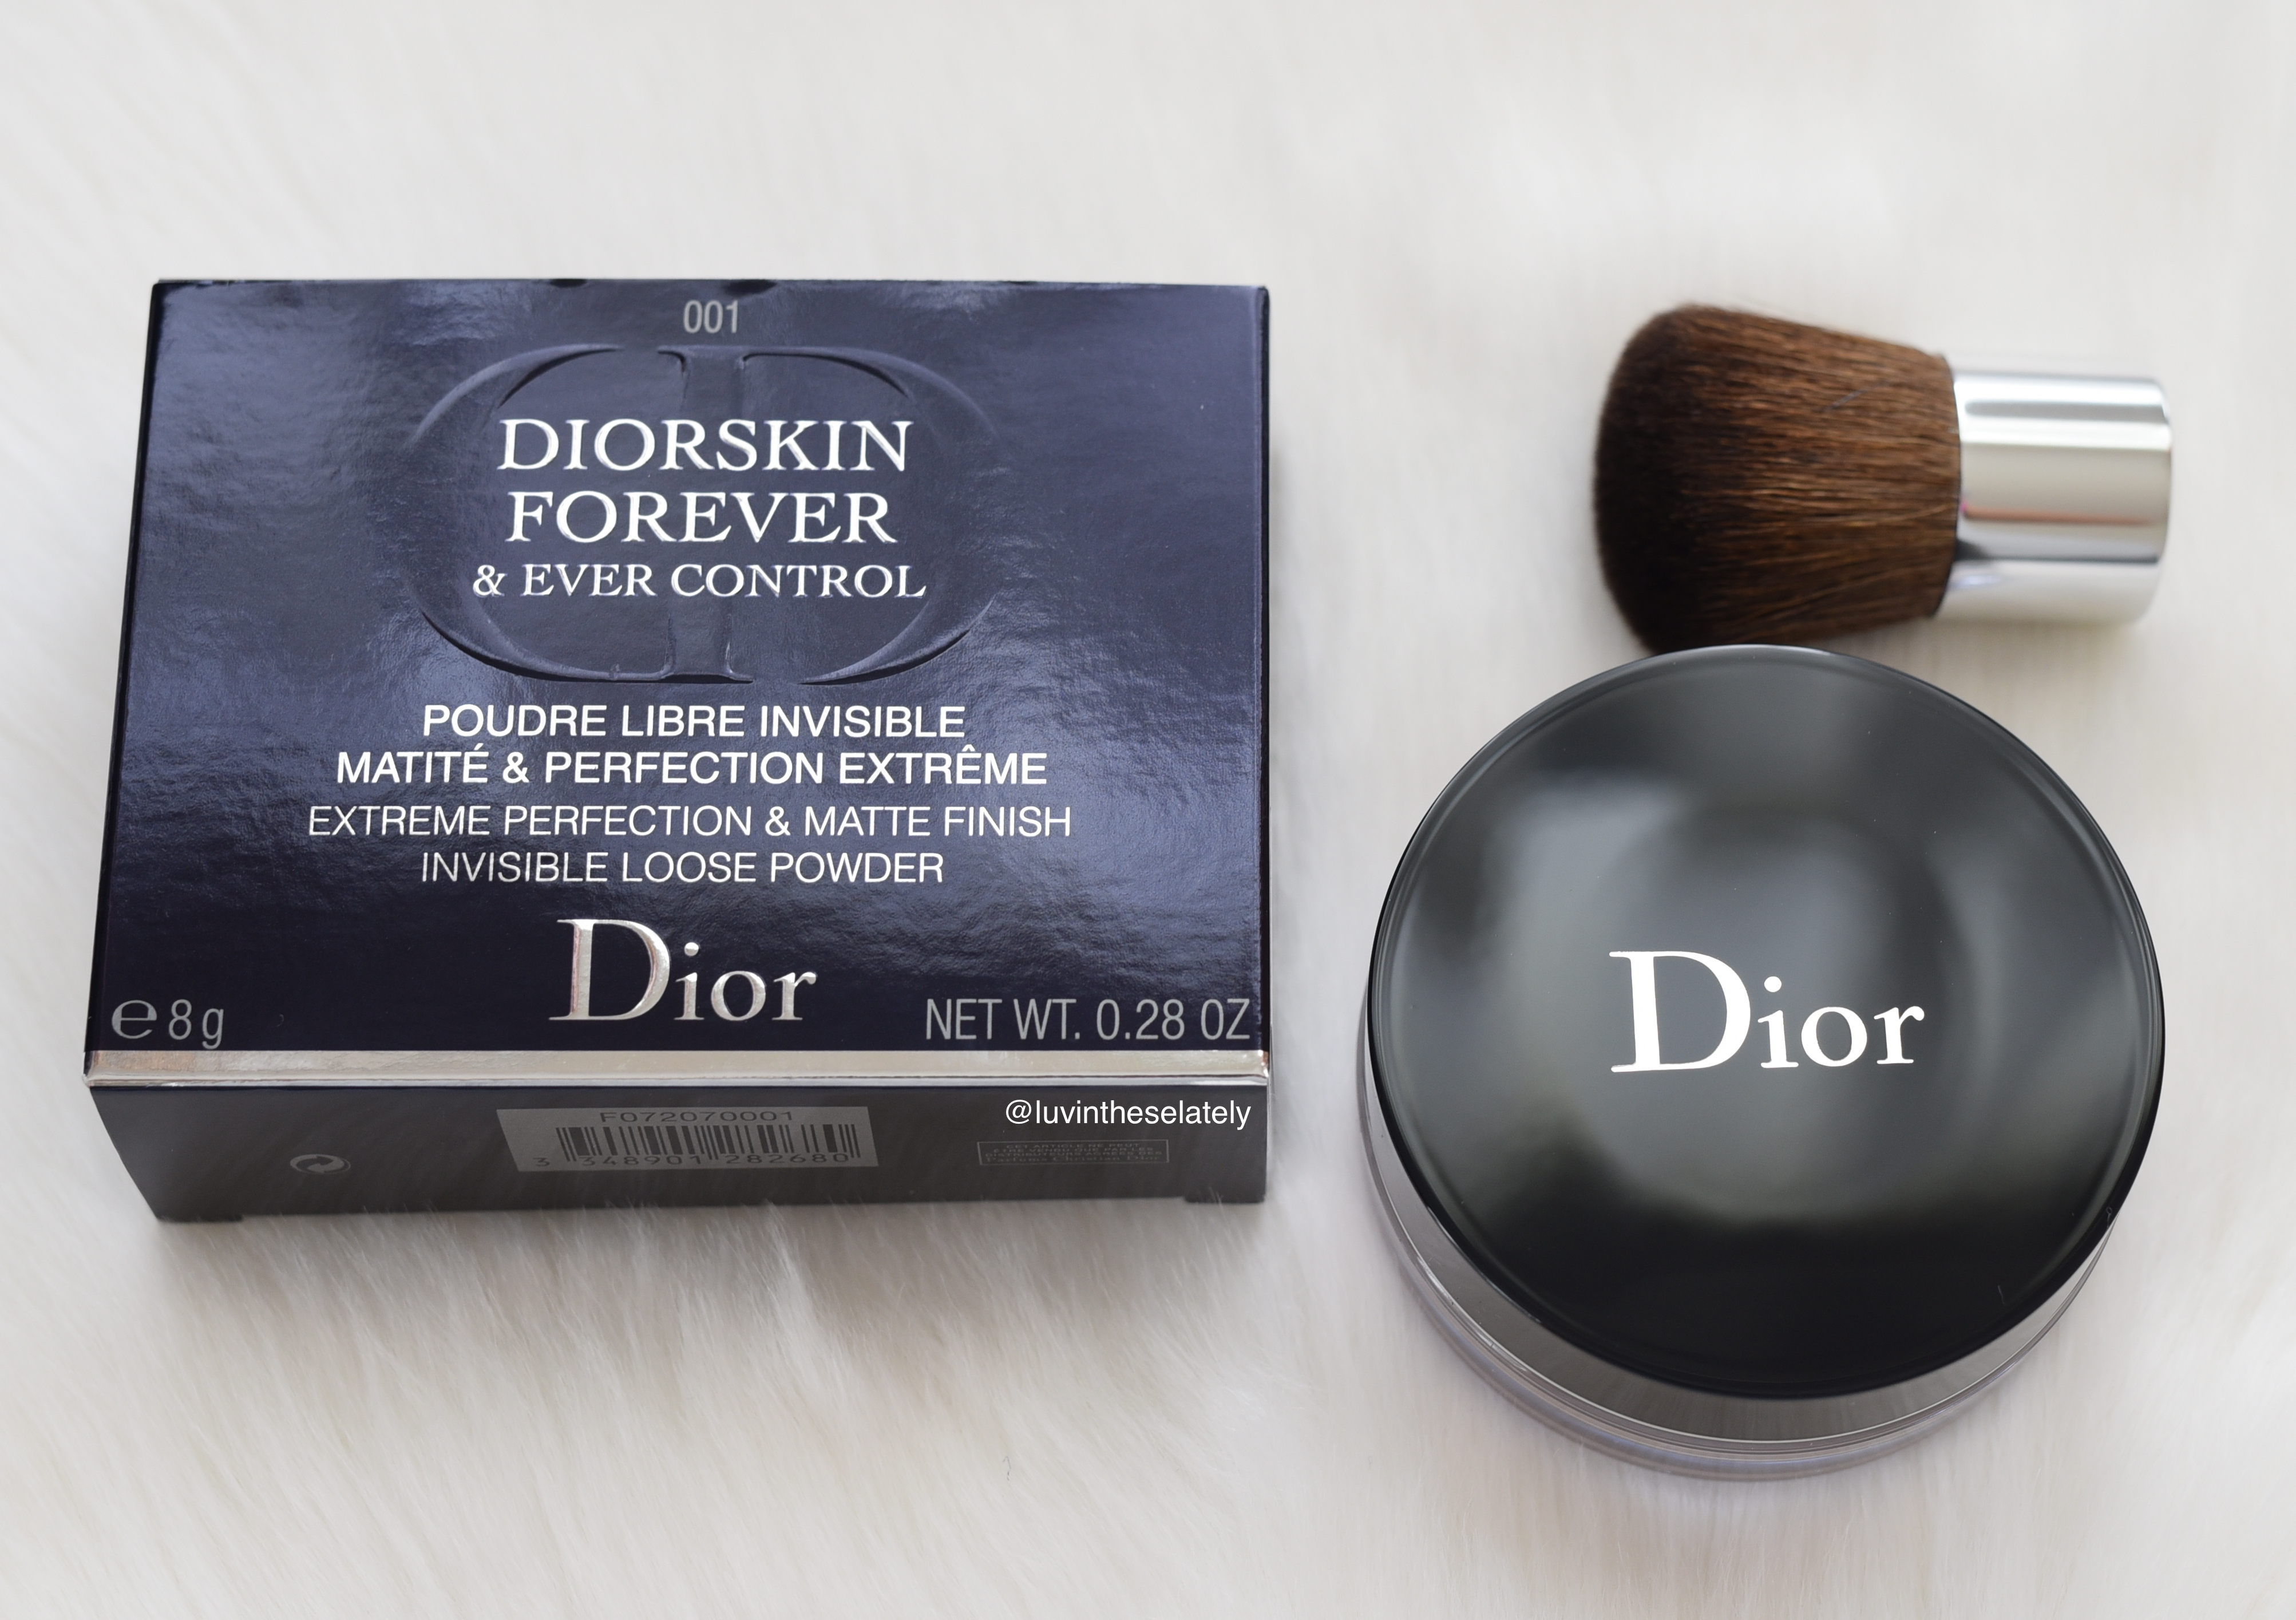 Diorskin Forever & Ever Control Loose Powder by Dior #13